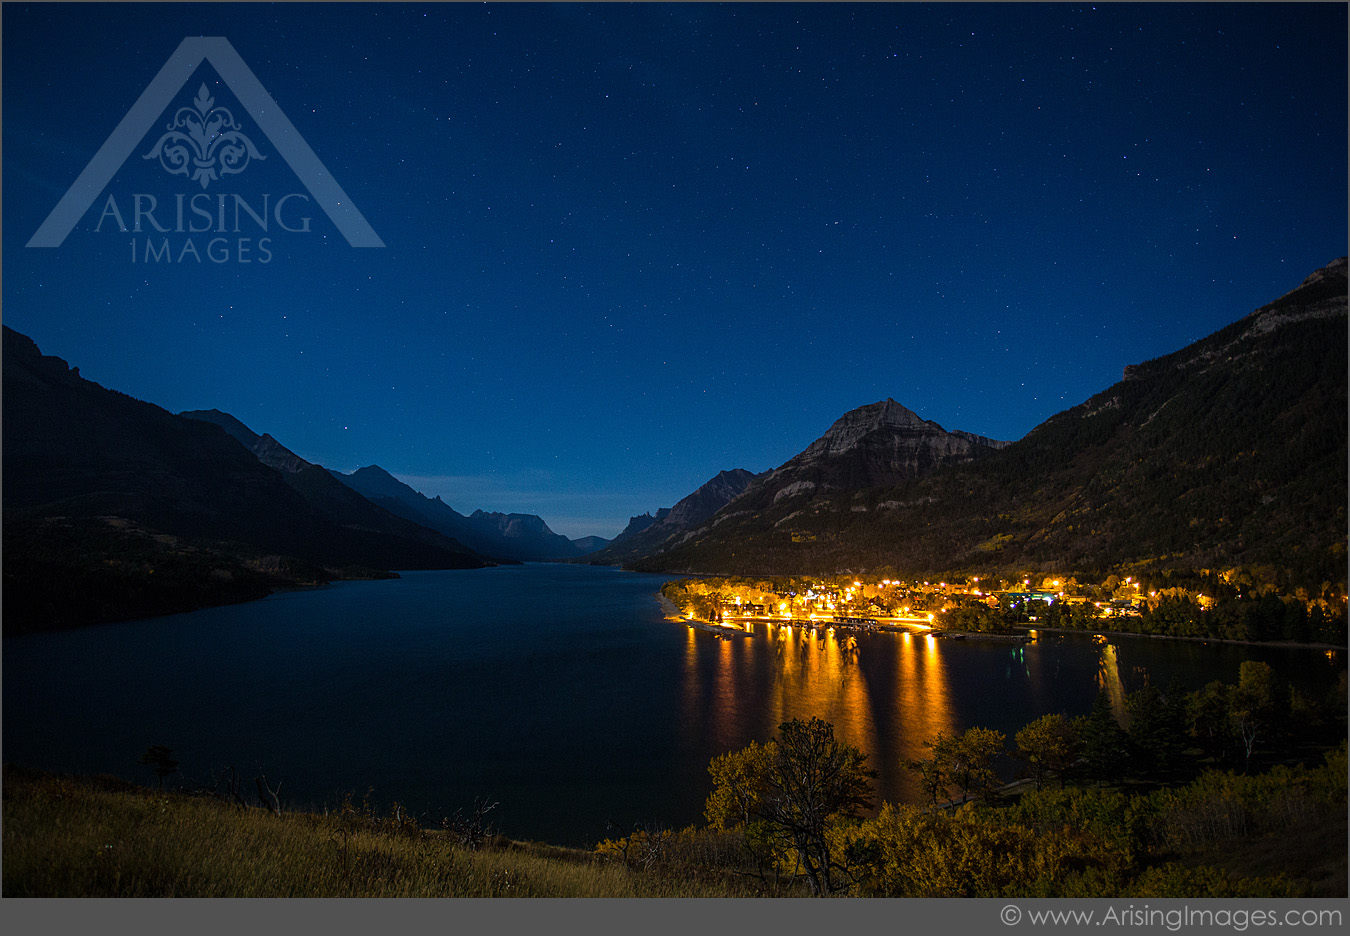 Night star photos over the Prince of Wales Hotel in Waterton Lakes National Park